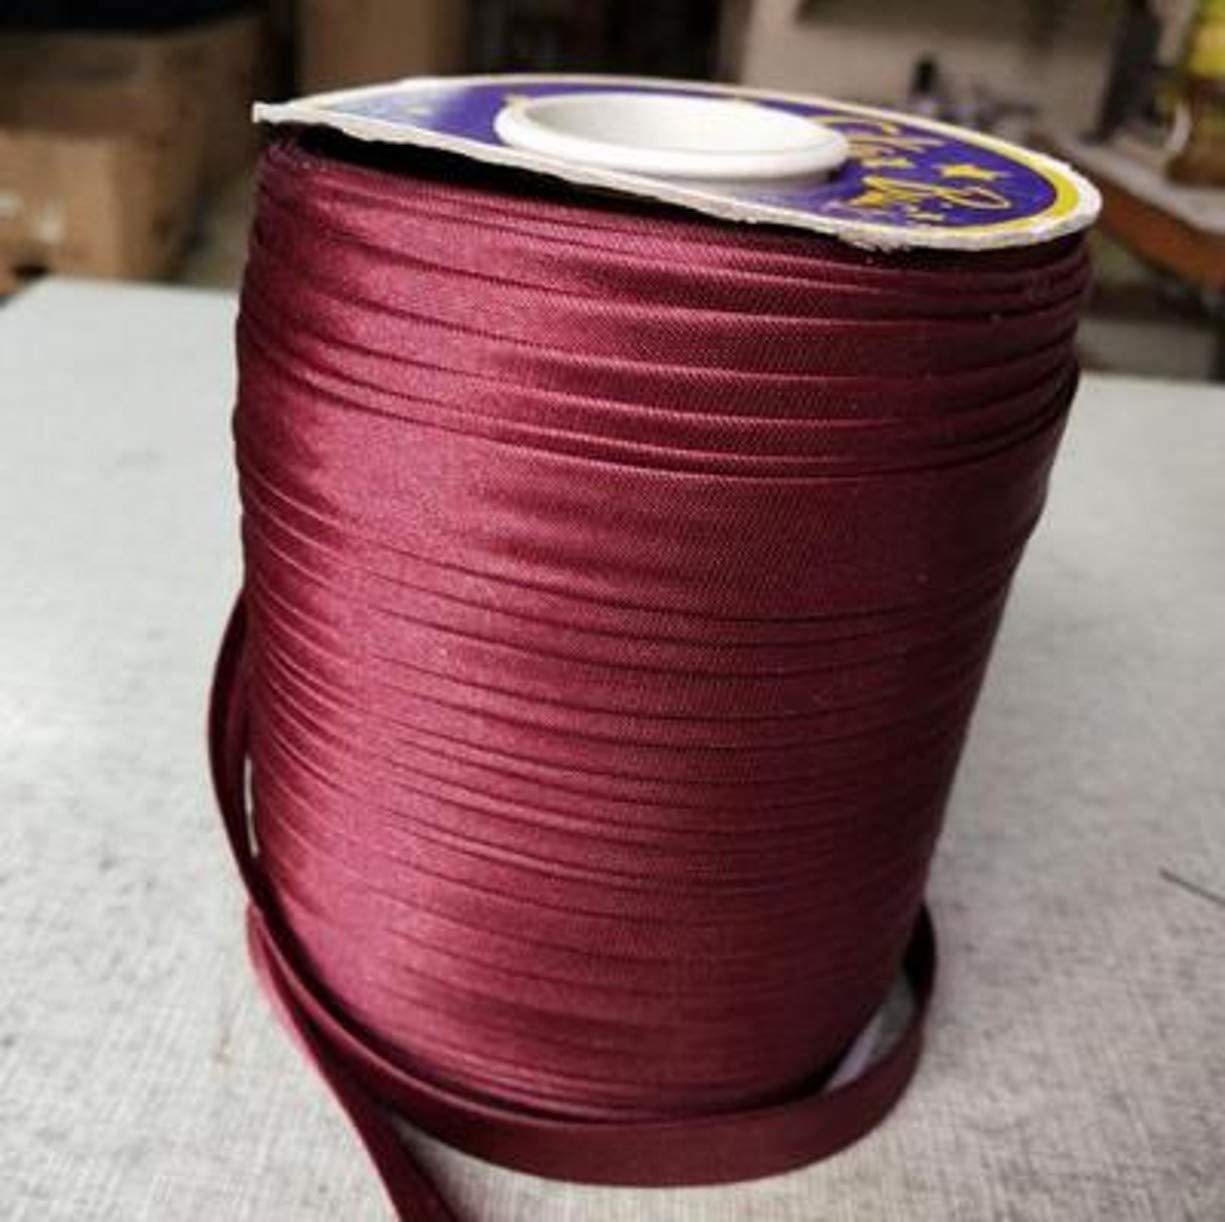 Hemming Binding Piping Quilting; Sewing Crafts 1//2 Inch 87 Yards, Wine Red Seaming CHENGYIDA Single Fold Bias Tape for Sewing